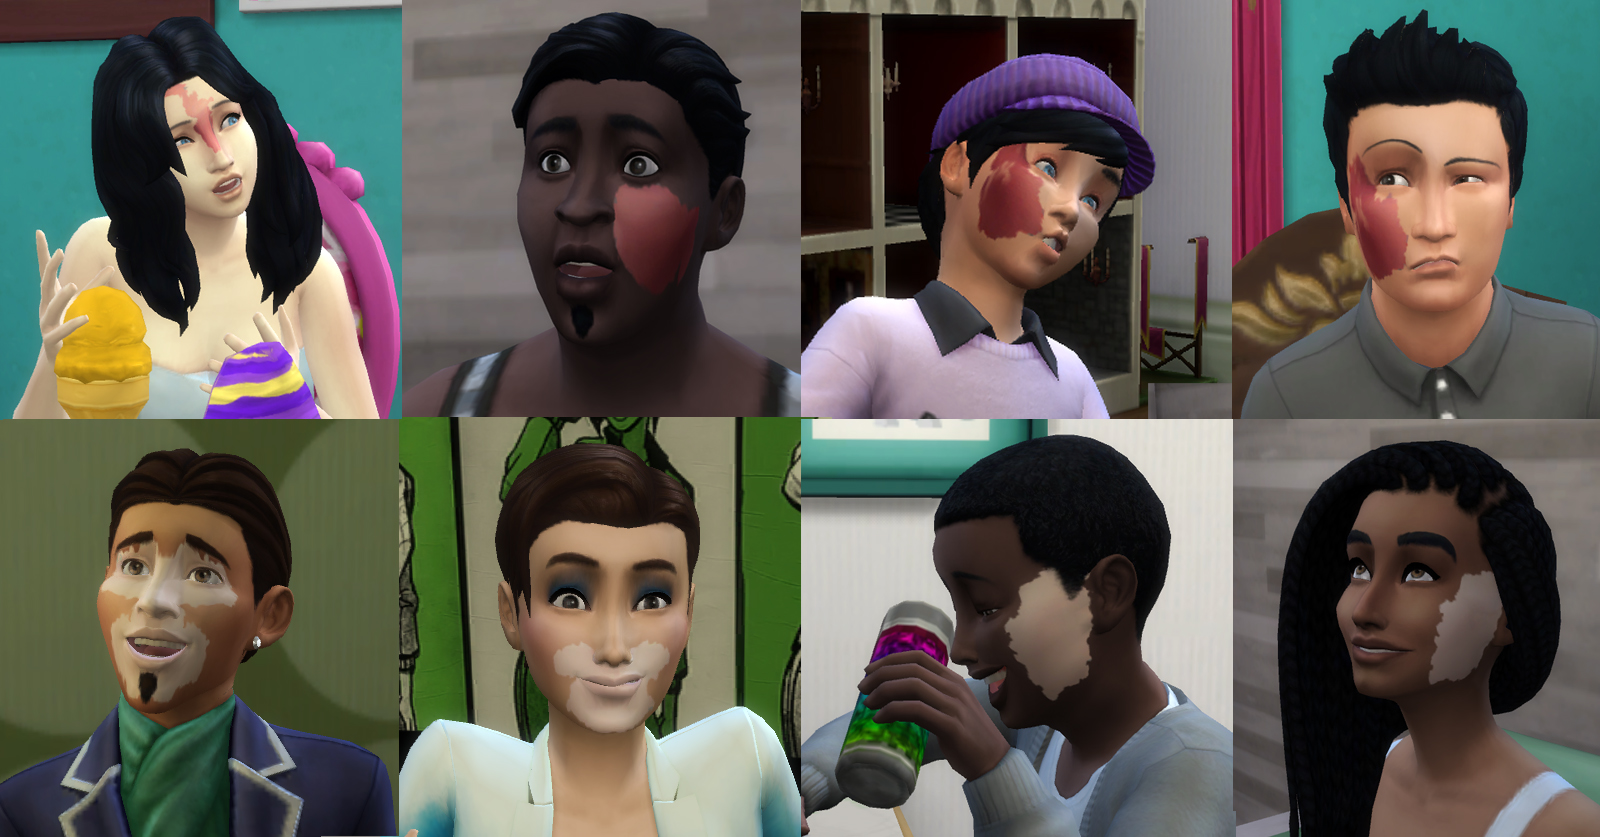 Mod The Sims Port Wine Stain Vitiligo Facial Marks